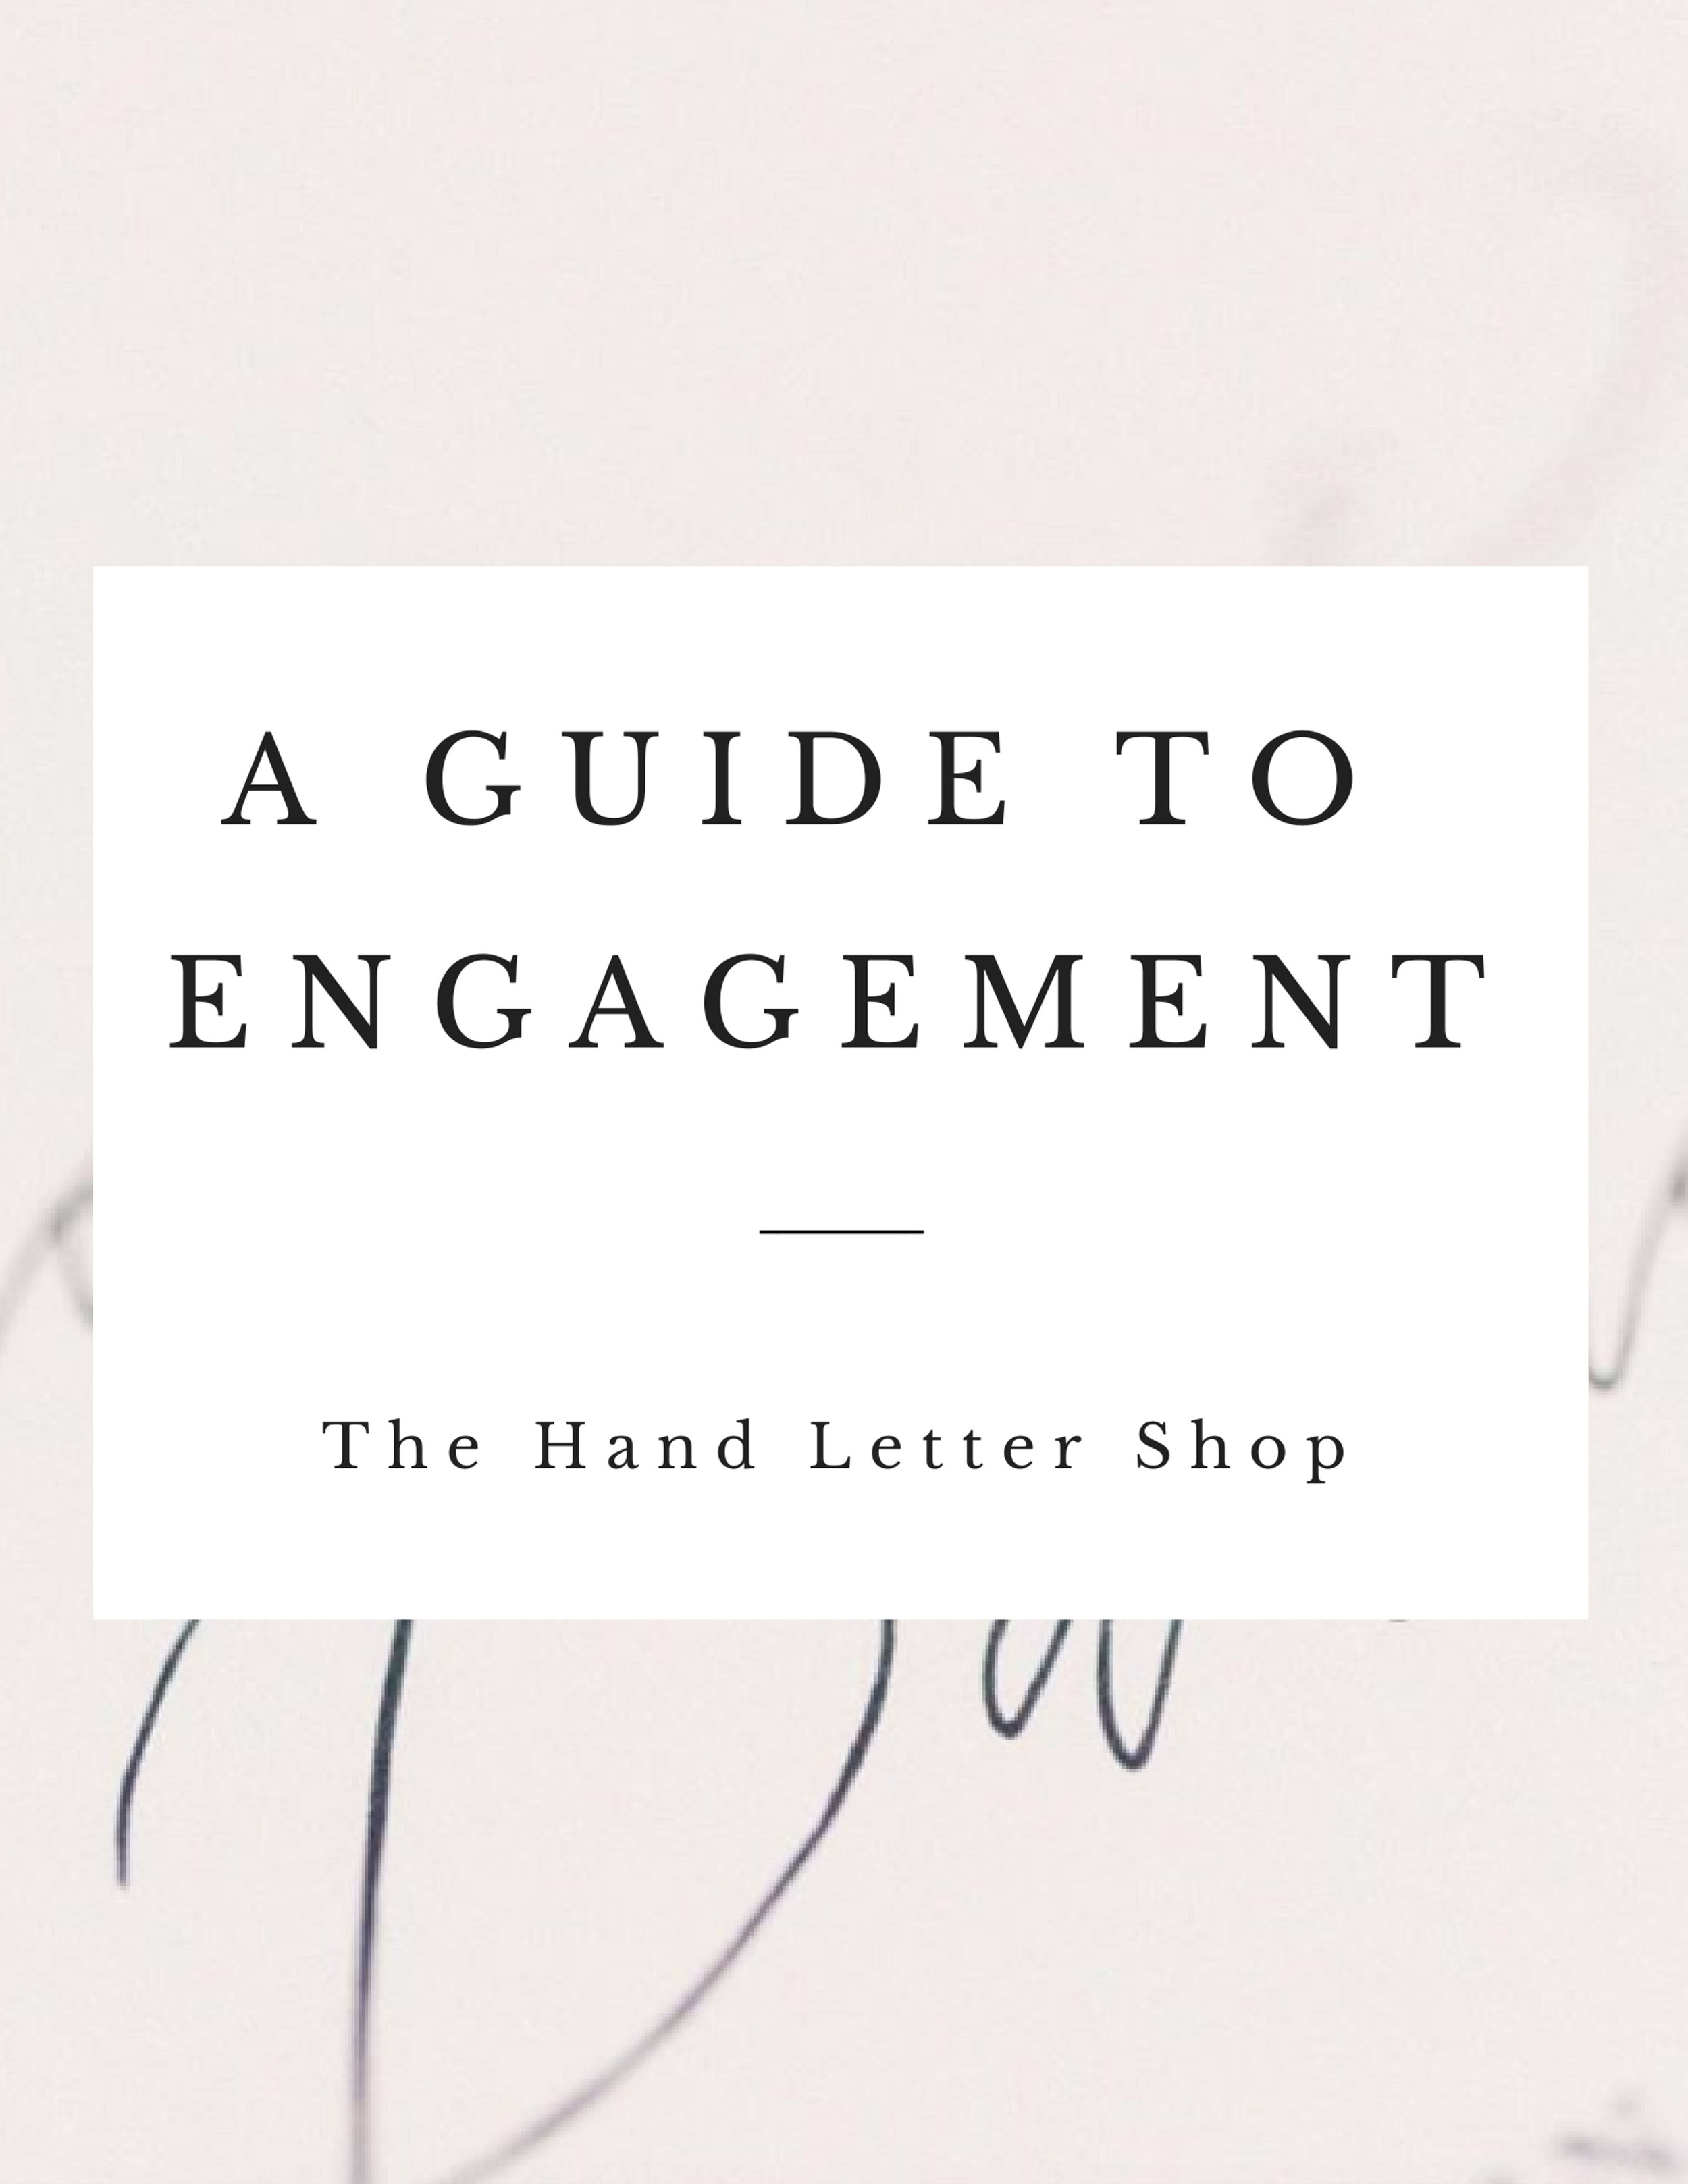 Getting married? - Congrats! Savor this time (and stay organized) with a free Guide to Engagement.